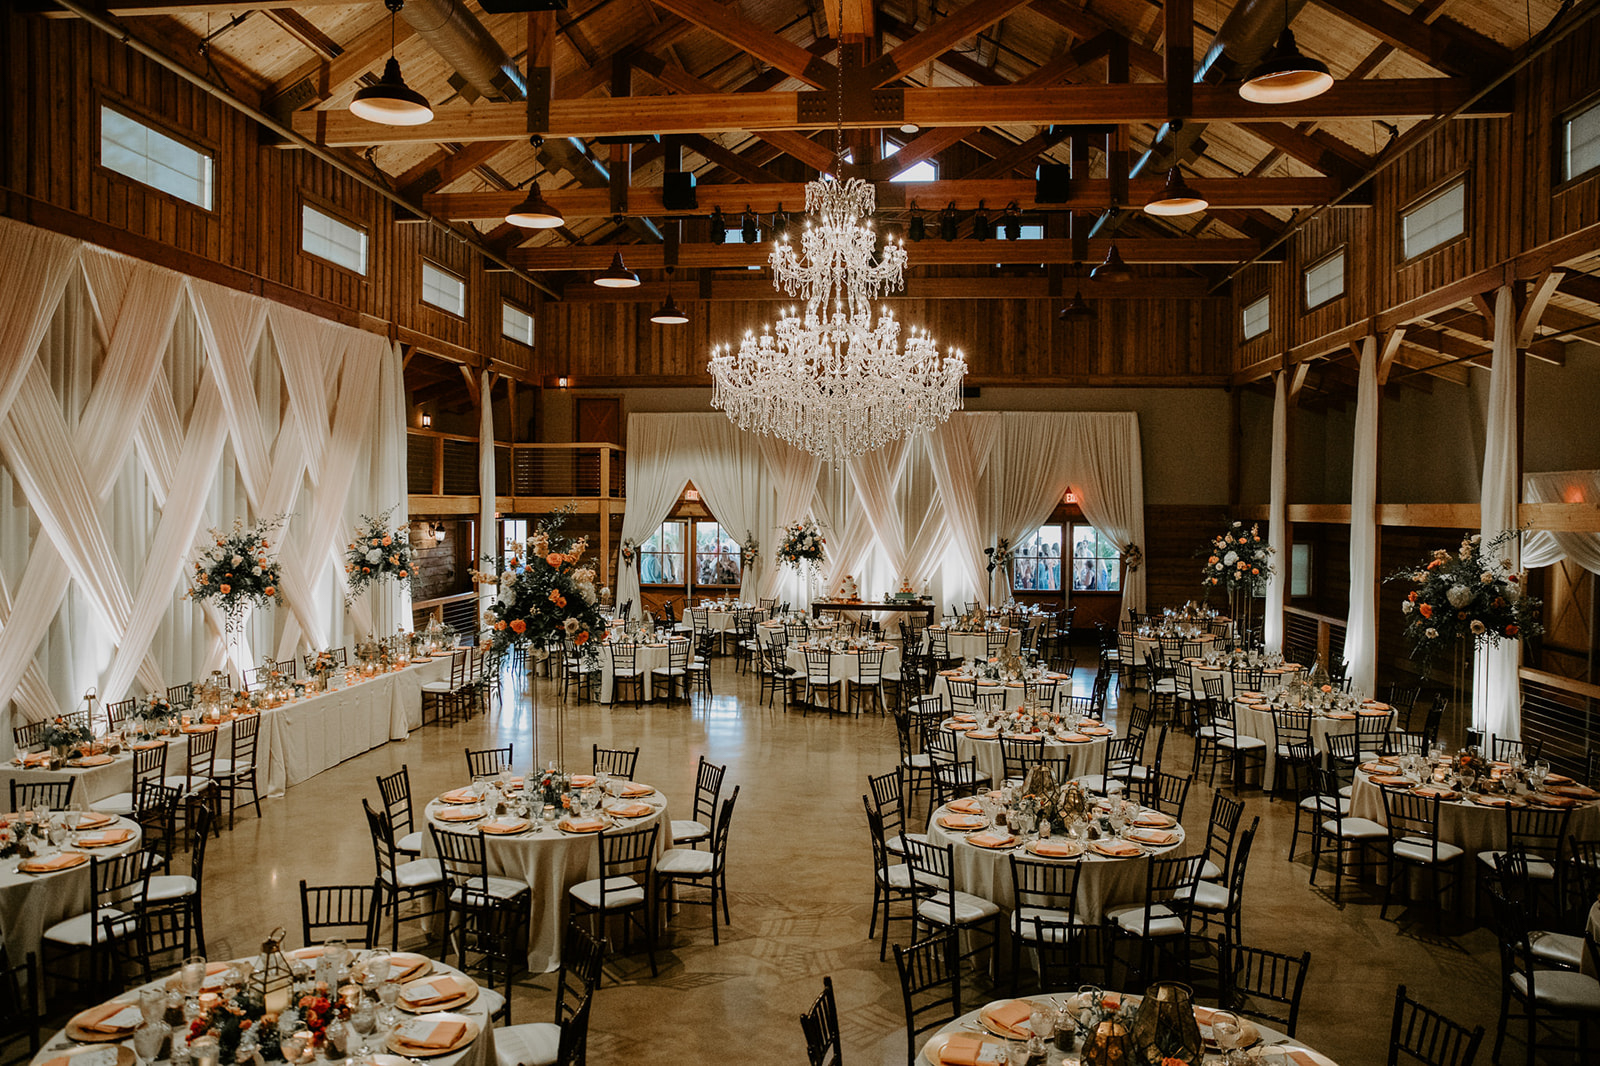 Meet Events Plus & Creations by Debbie: Where Custom Services and Attention to Detail Collide | Nashville Bride Guide